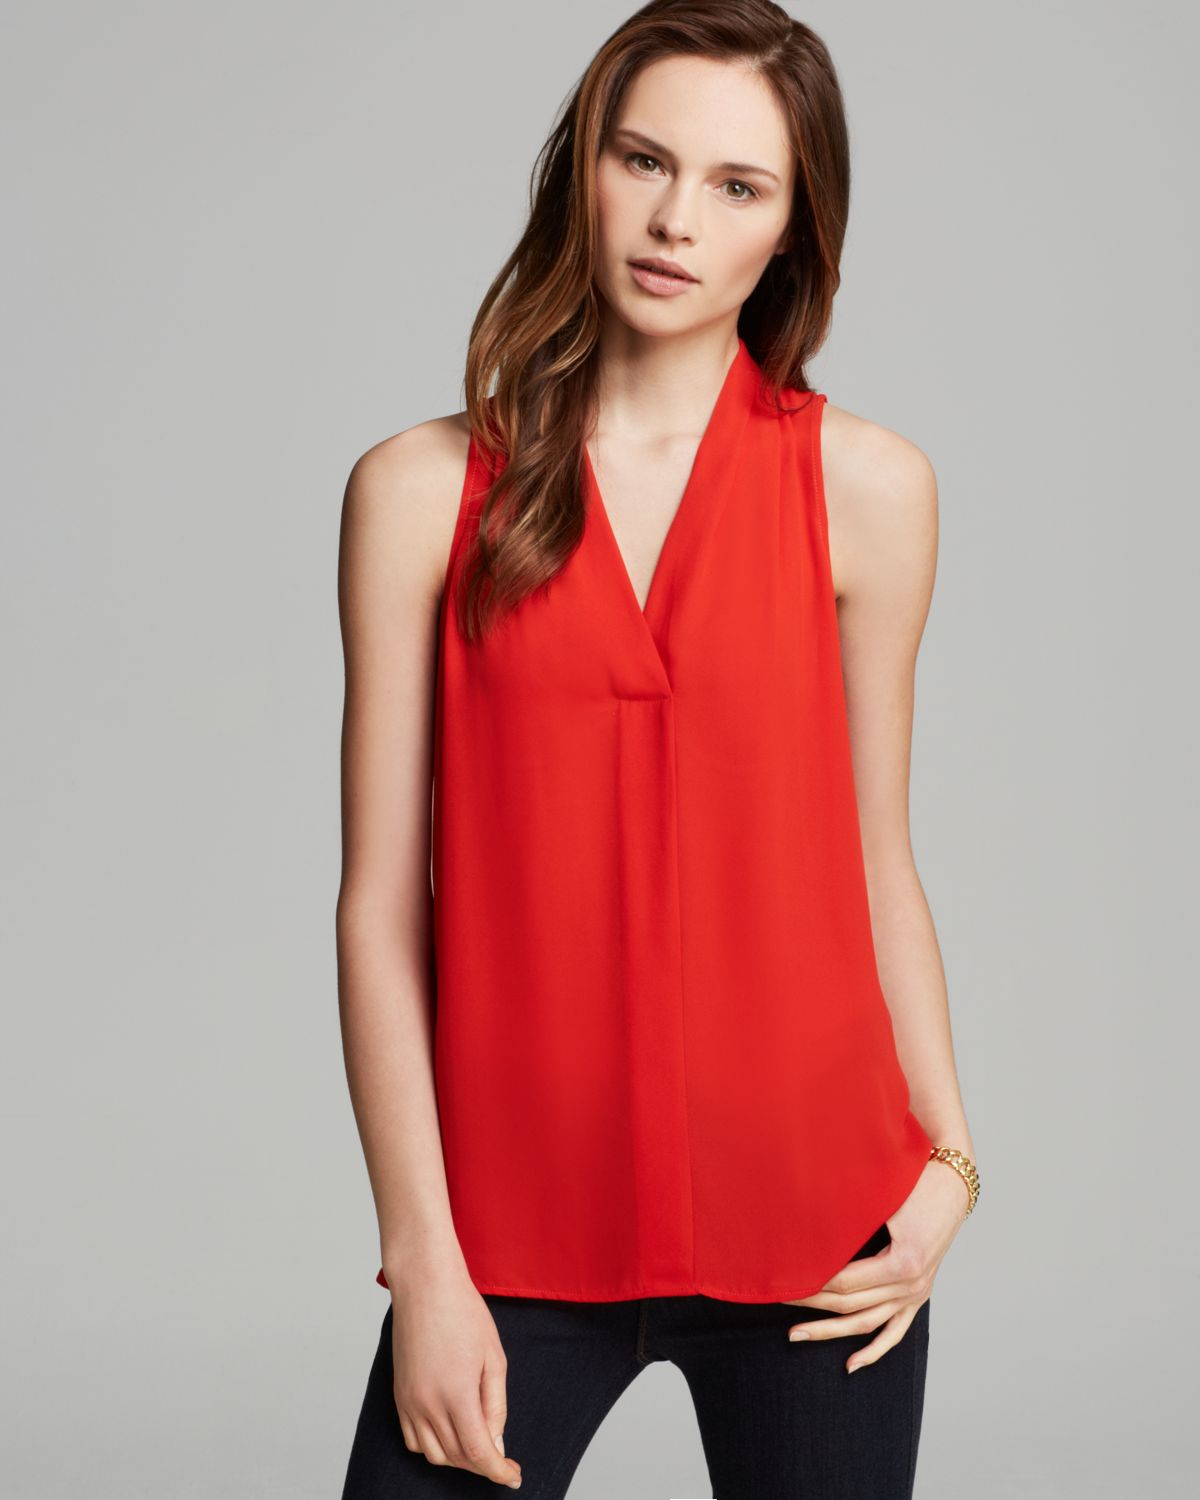 Top Women S Fashion Magazines: Vince Camuto Sleeveless V Neck Top In Red